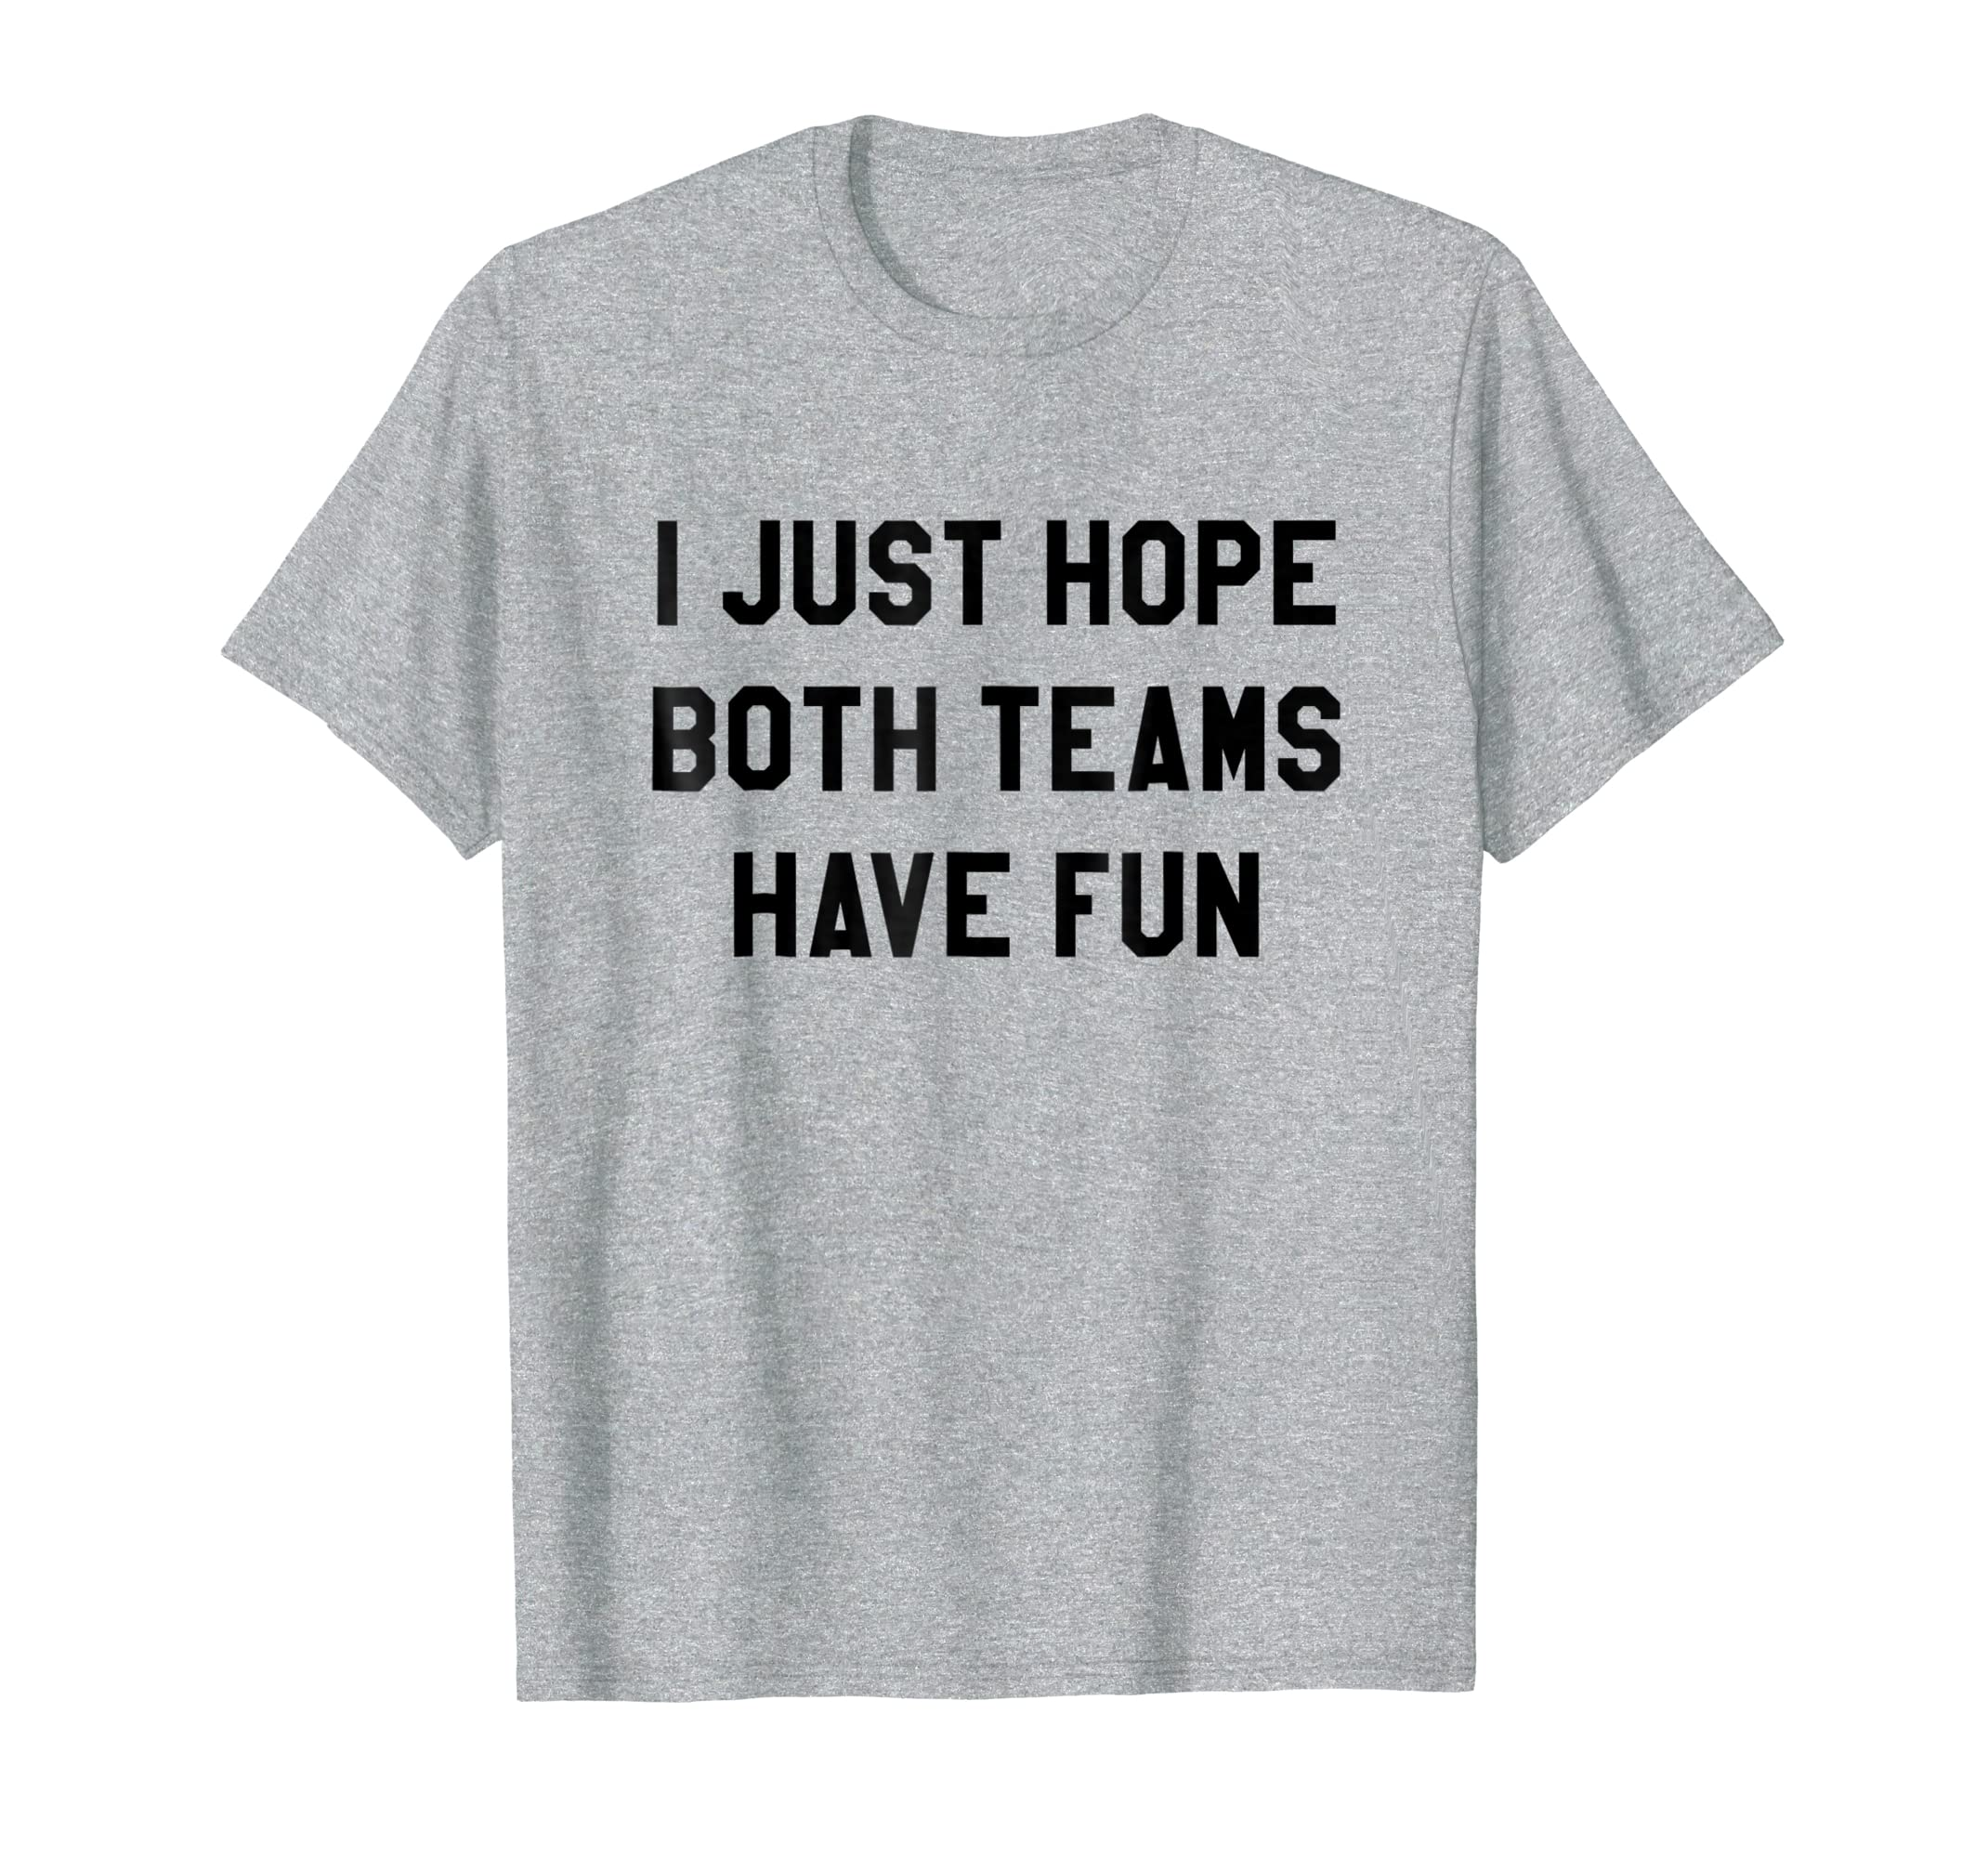 89f8895a3a I Just Hope Both Teams Have Fun T Shirts for Men,Women,Kids